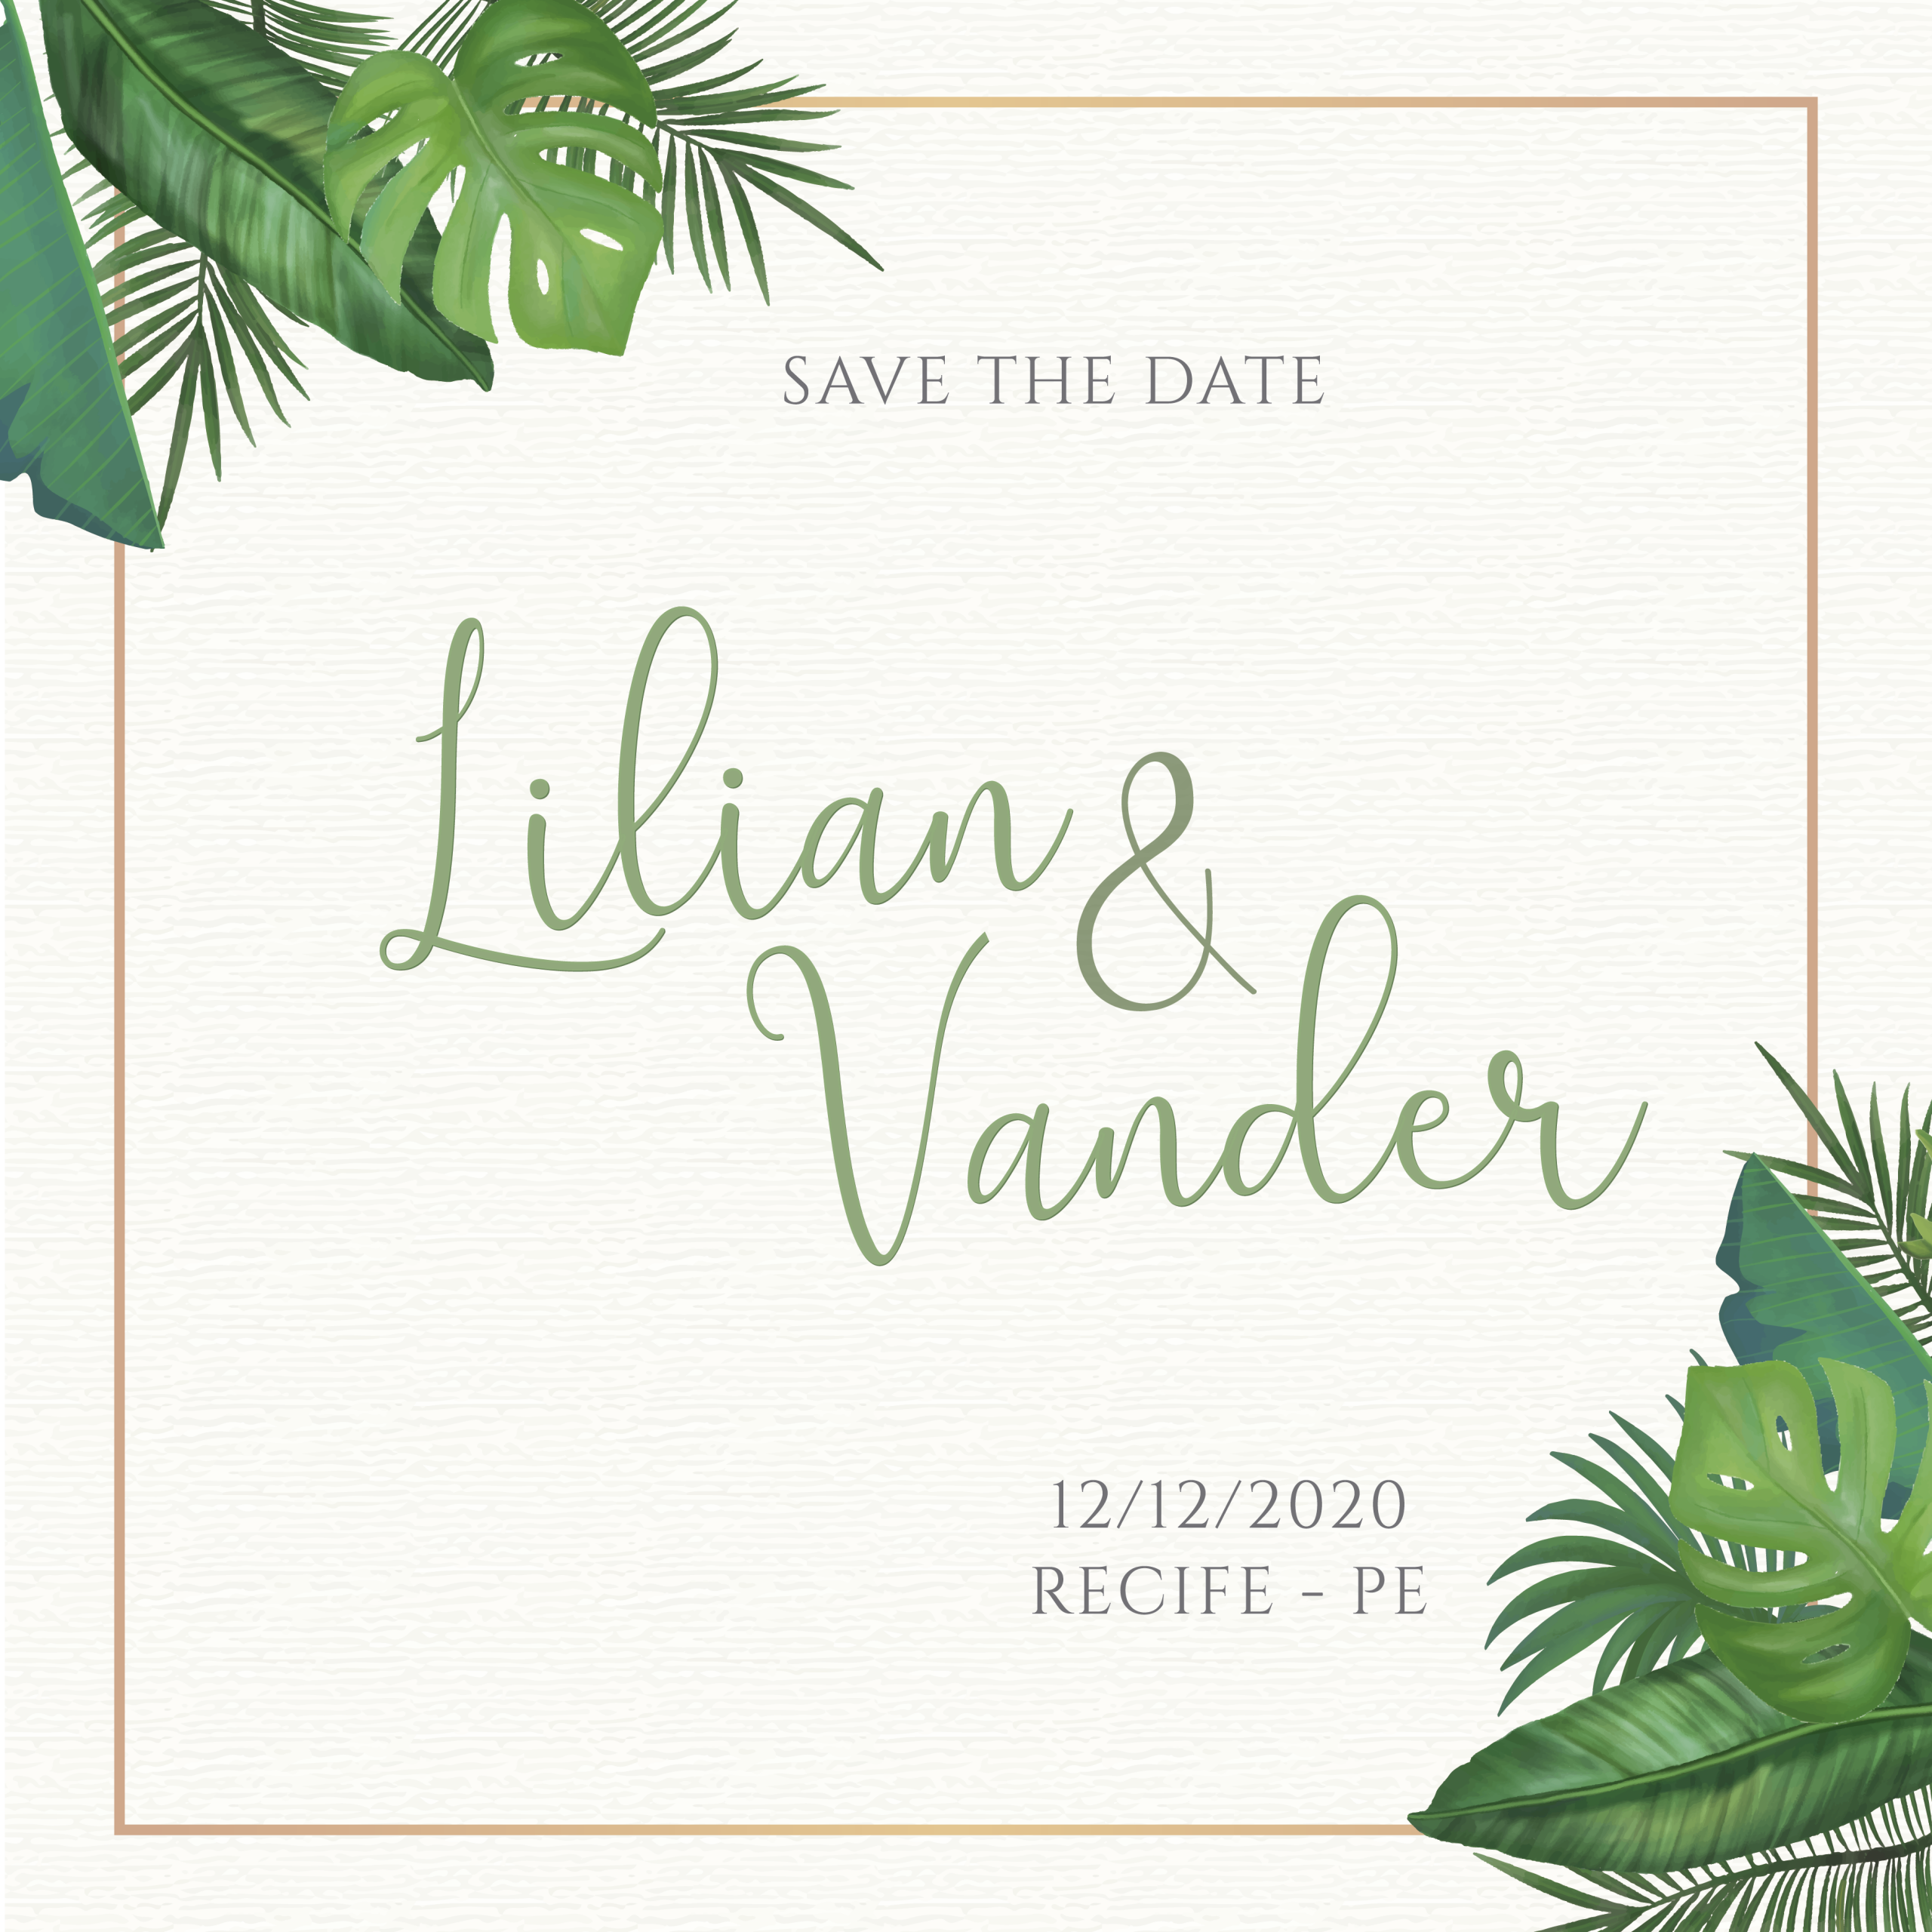 Save the date Lilian e Vander -